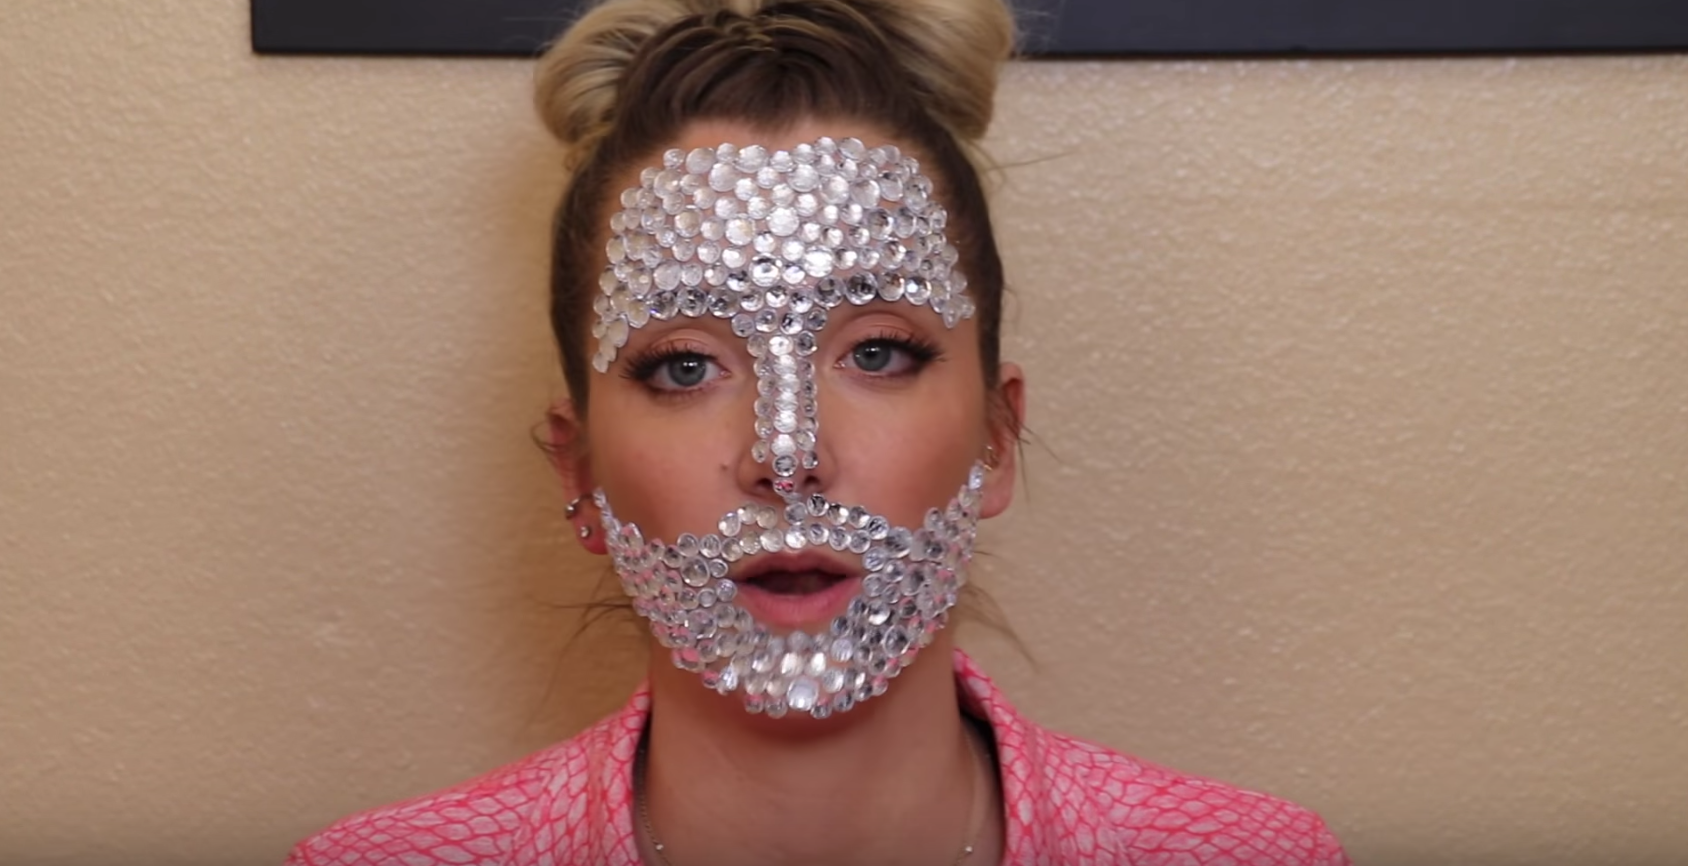 Pictured above, Jenna Mourey (Marbles) covers her face in rhinestones.